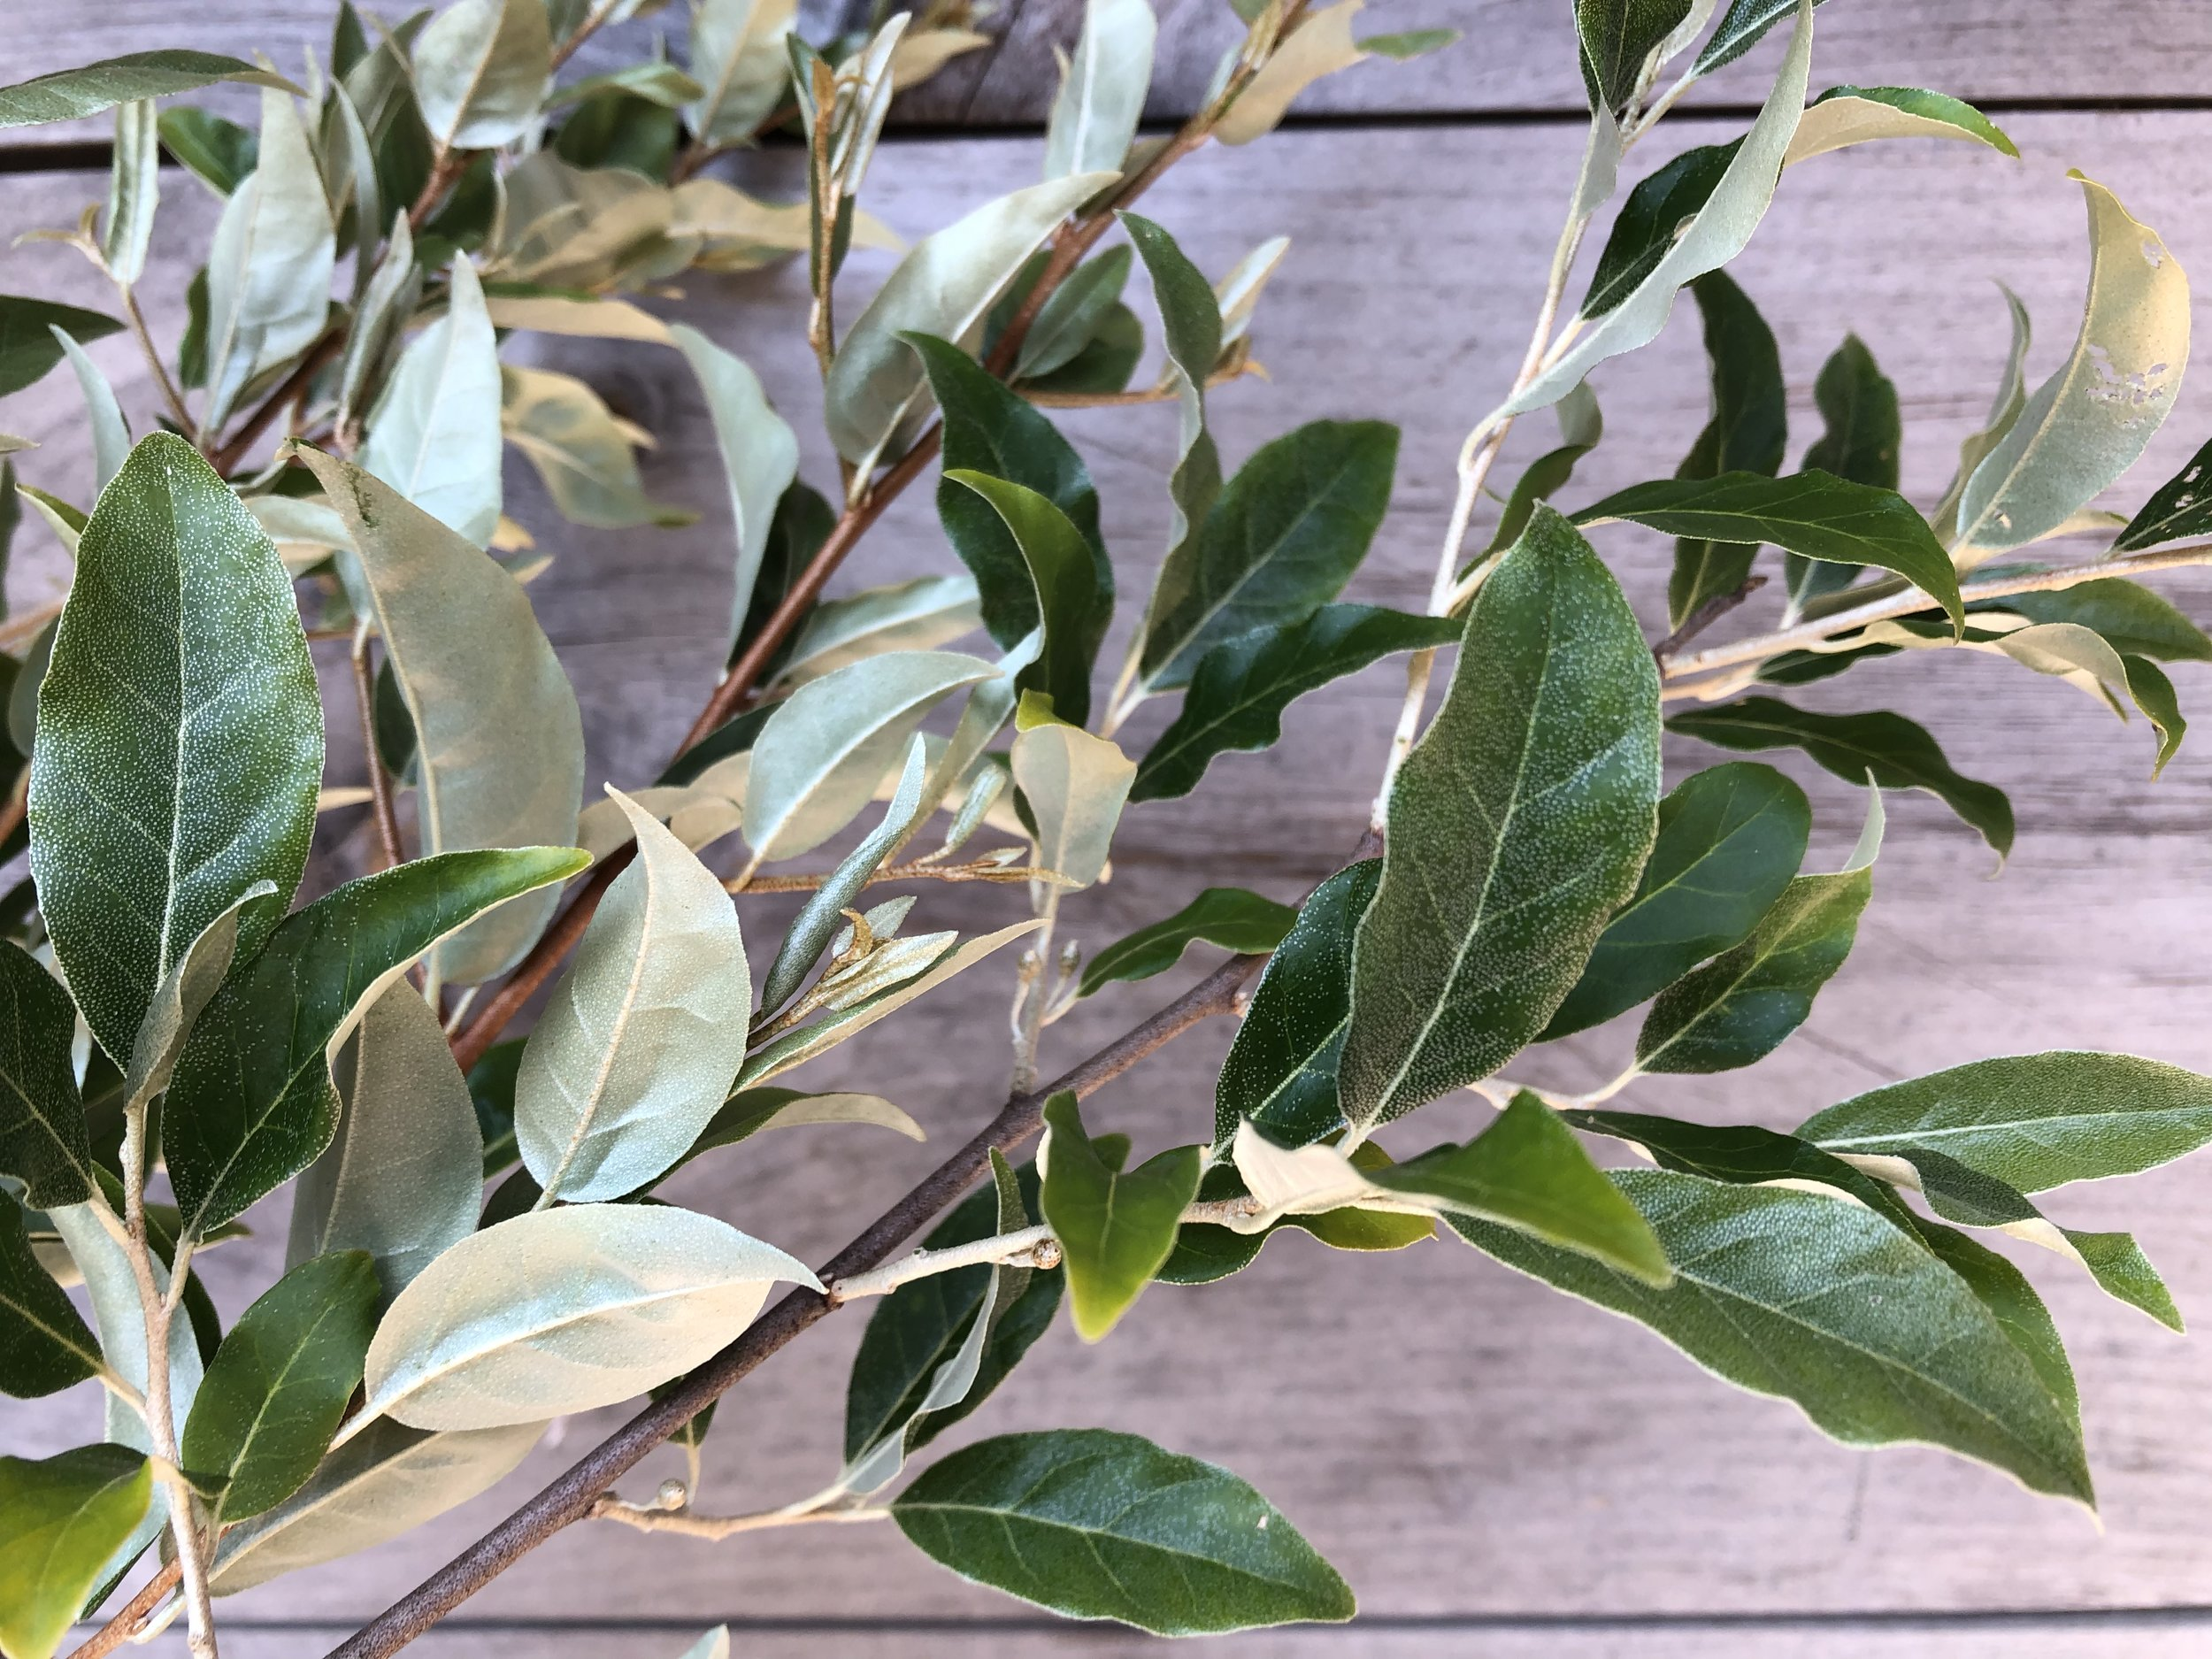 Foliage, Autumn Olive